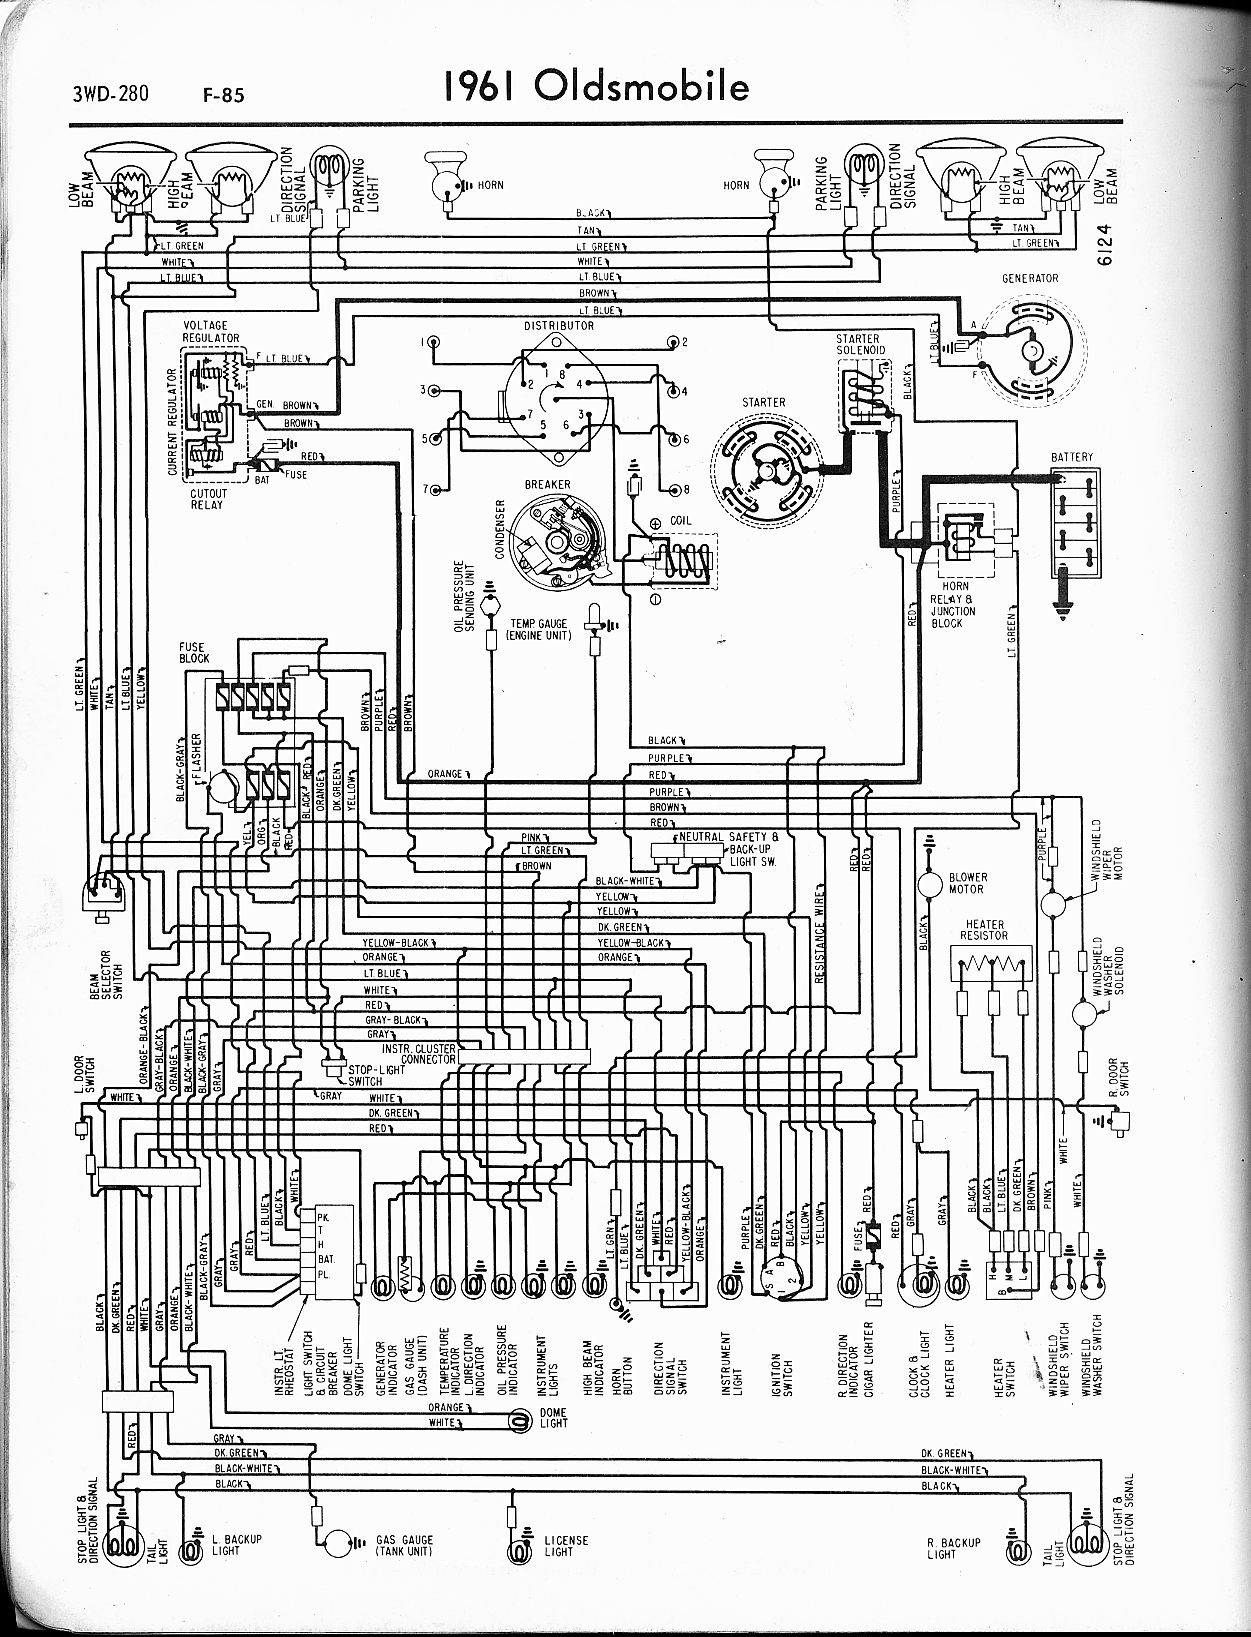 MWire5765 280 oldsmobile wiring diagrams the old car manual project Oldsmobile Aurora Power Steering Line at nearapp.co